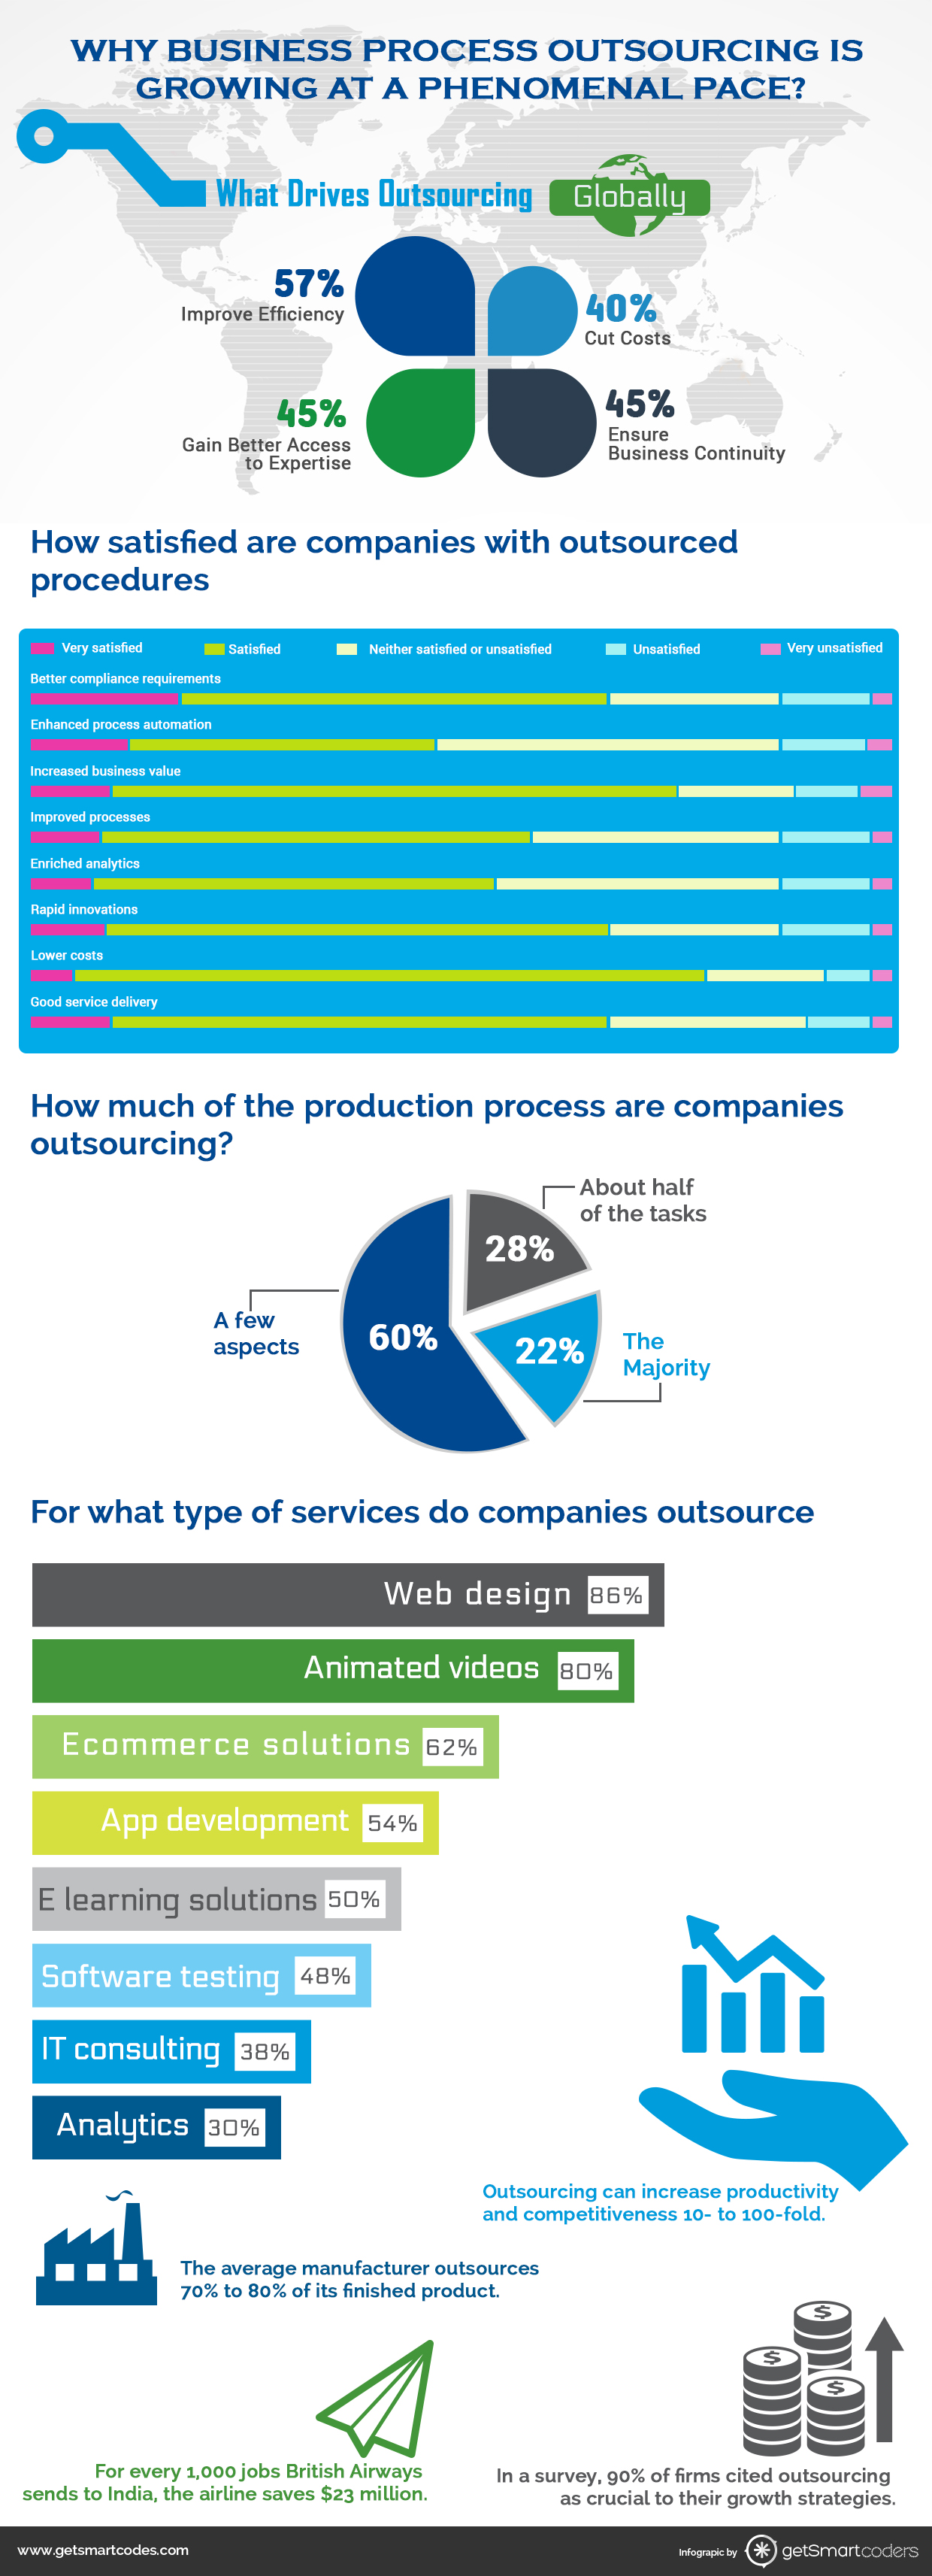 Infographic on business process outsourcing